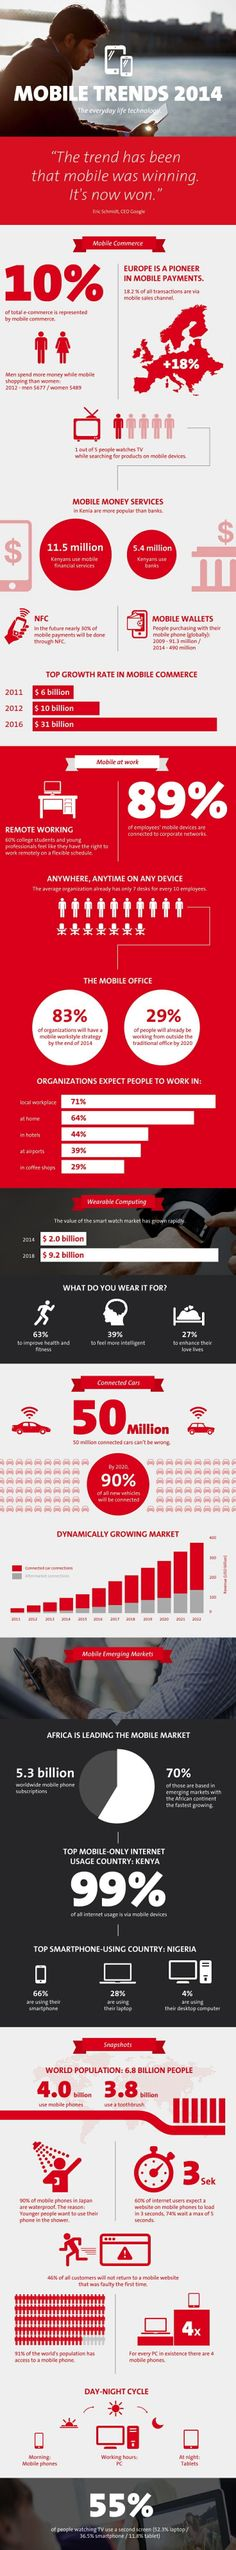 #Mobile #Trends in #2014 #infographics